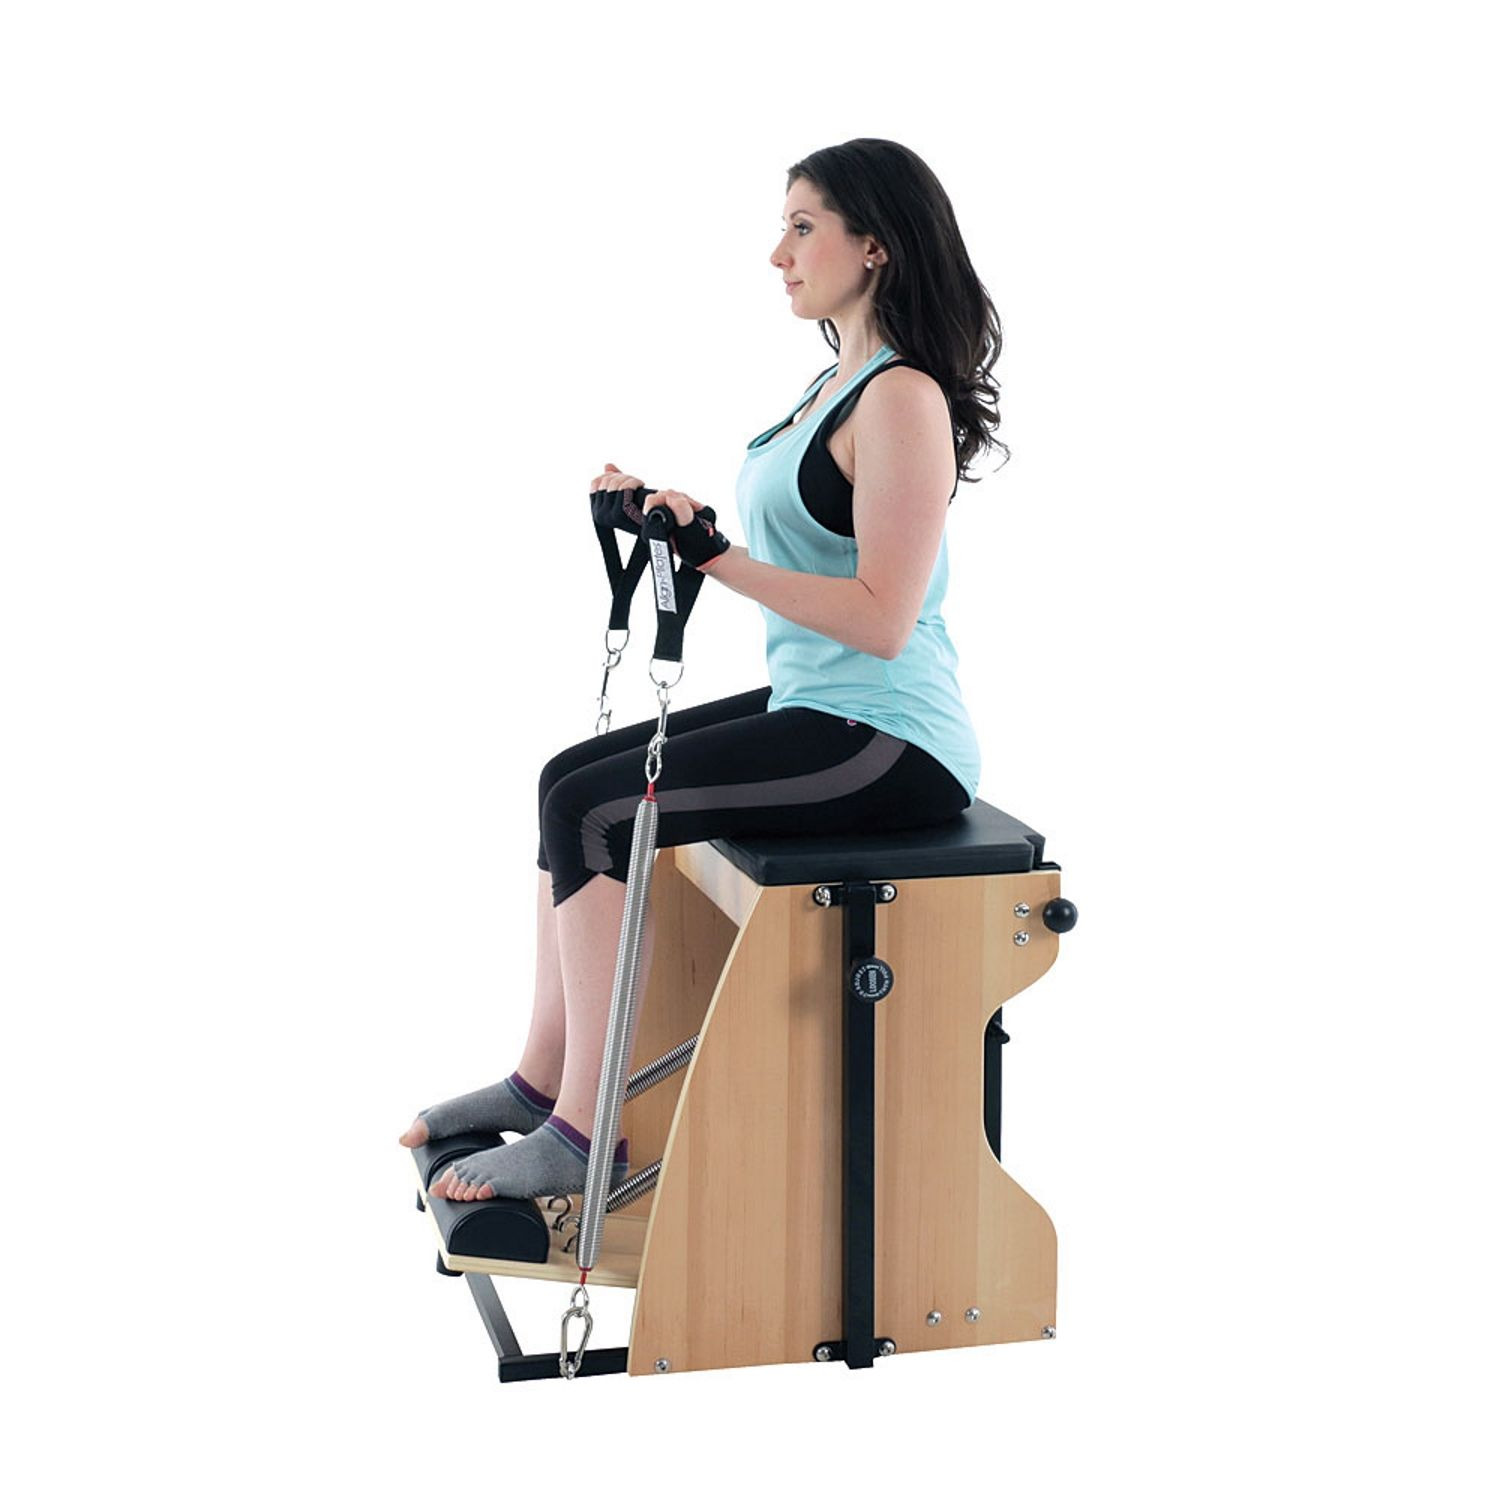 Pilates Chair For Sale: Combo Chair II Fully Assembled